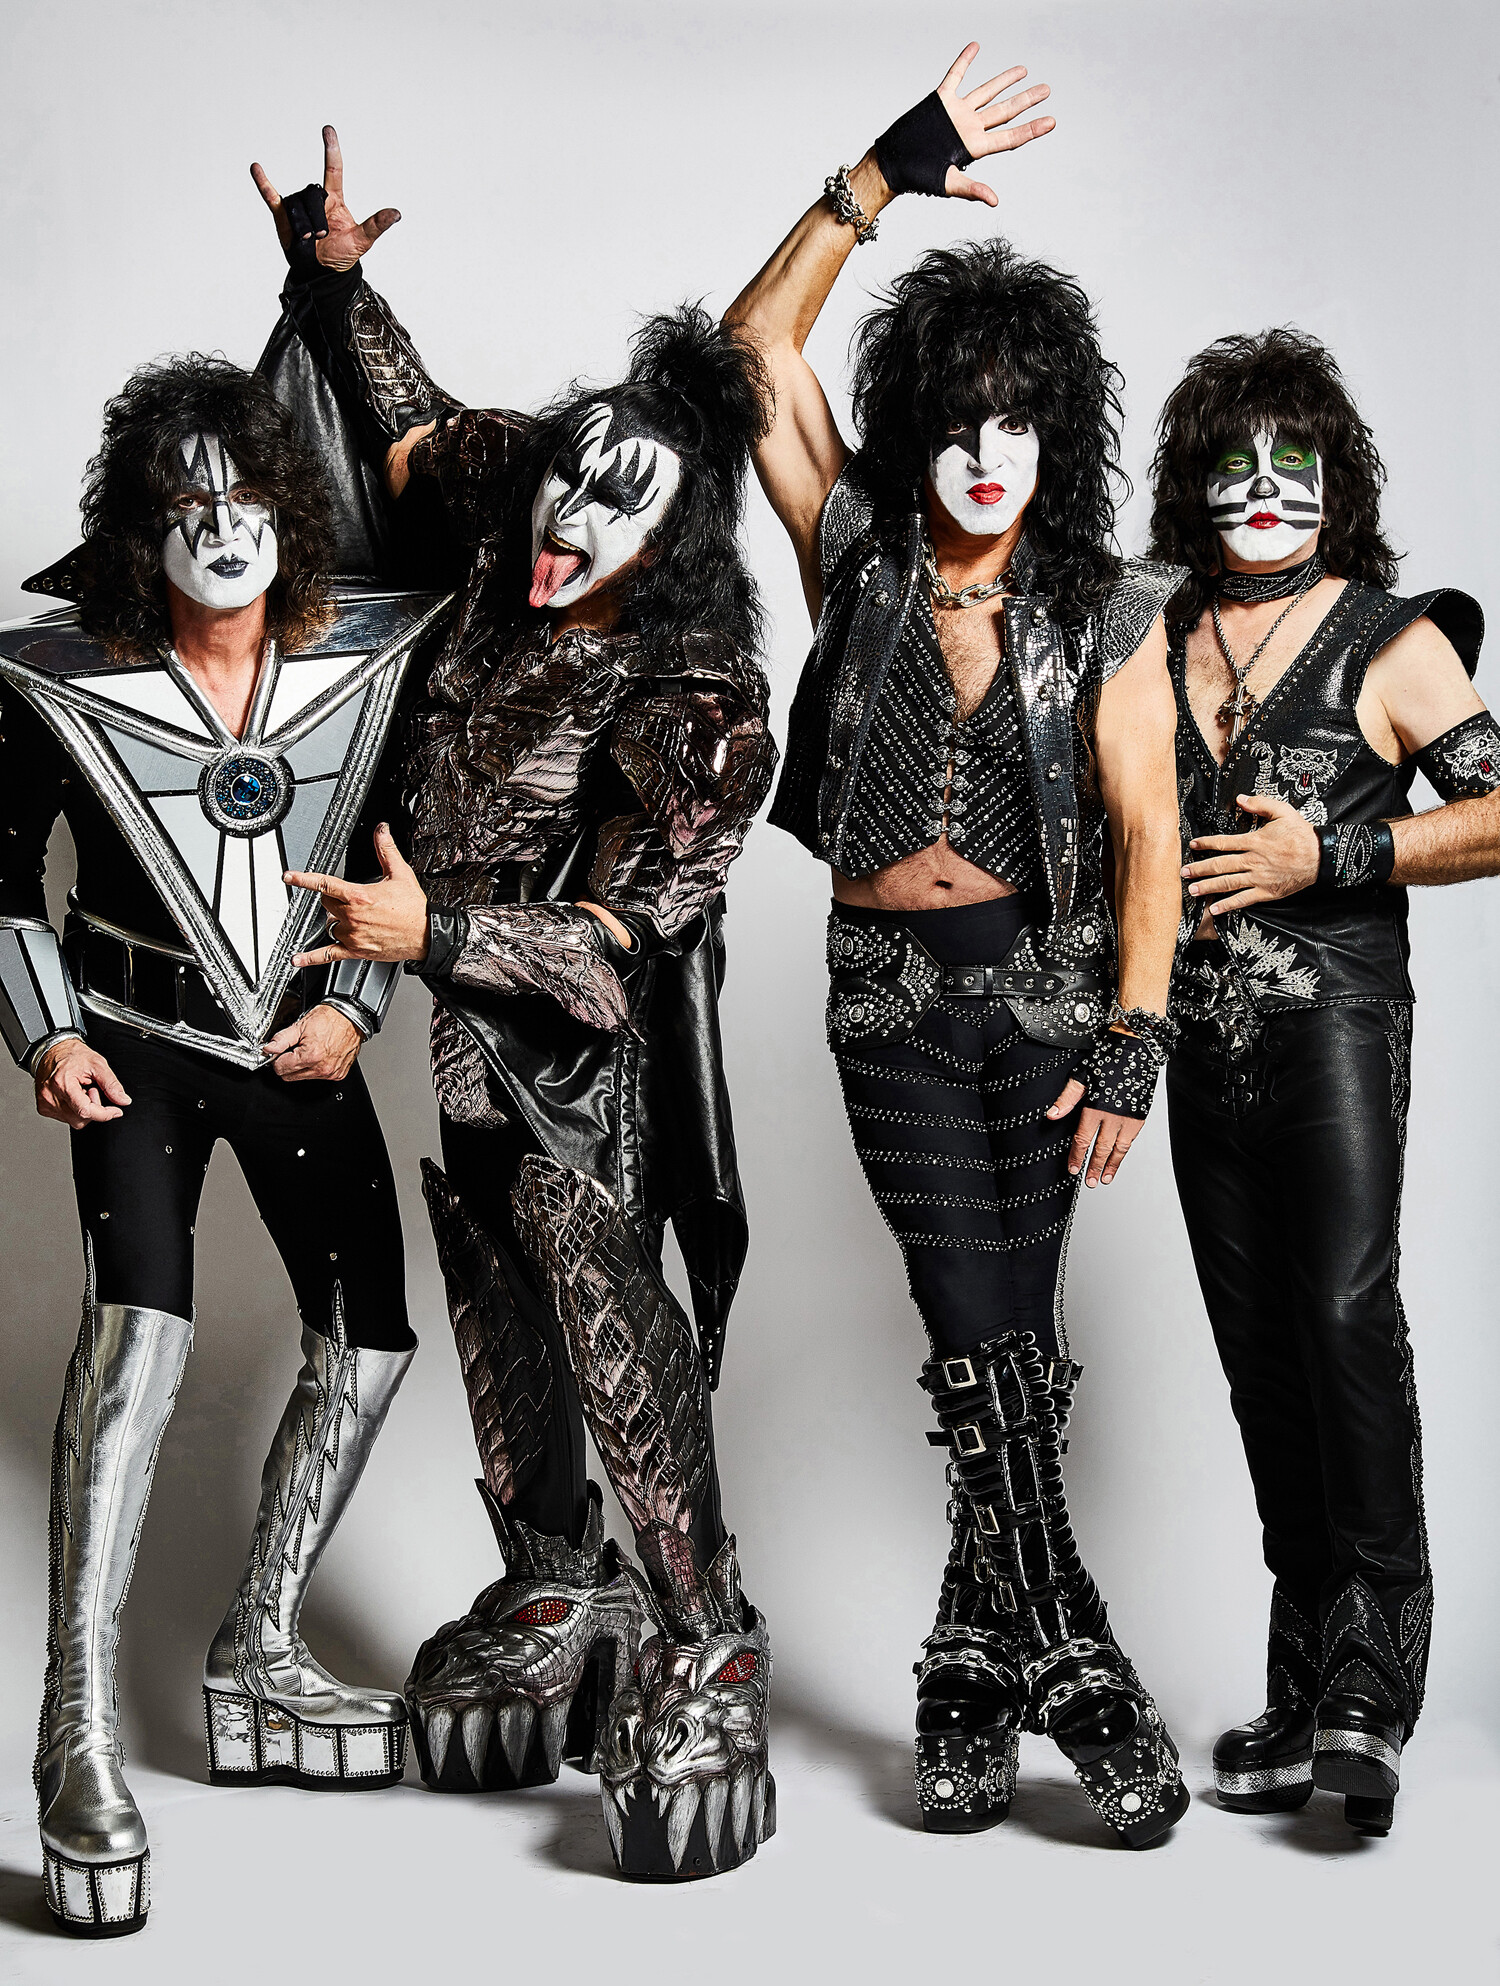 Kiss: Tommy Thayer, Gene Simmons, Paul Stanley und Eric Singer (v.l.) (Foto: picture alliance/dpa)